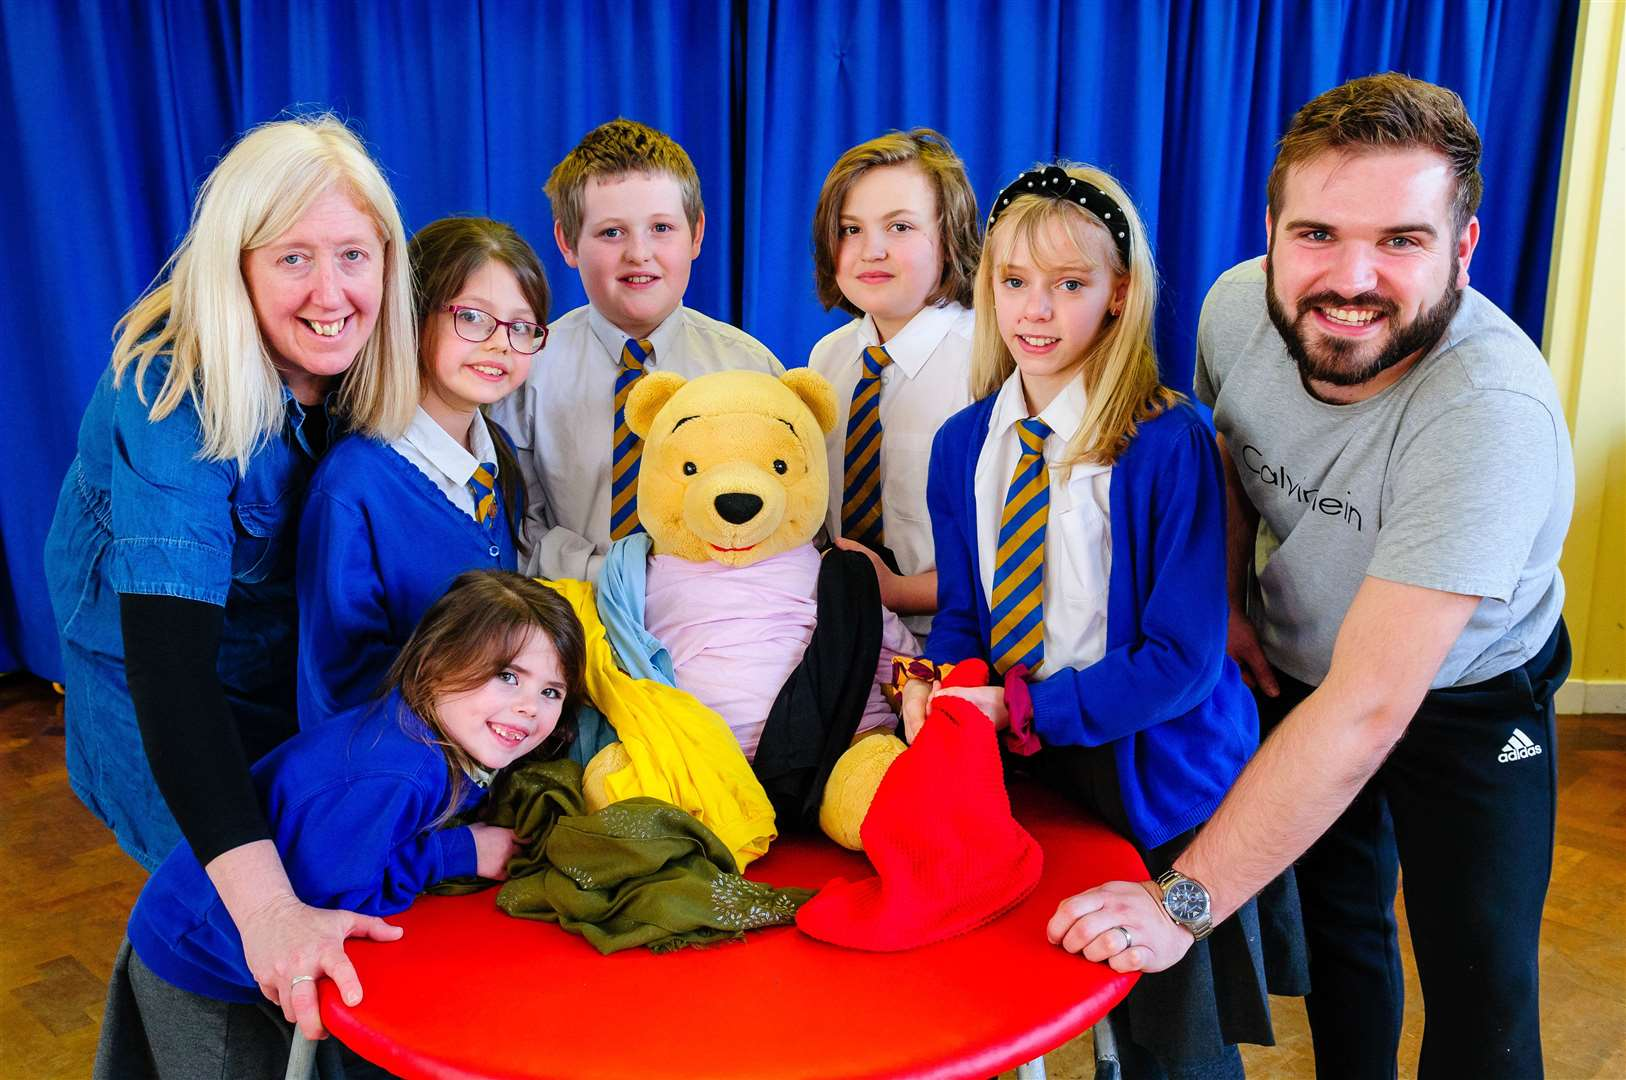 11/02/2020, Great Cornard, UK. ..Pot Kiln primary school is hosting an assembly which will be exploring the topic of philosophy. Pictured from left Mrs Fiona lock, Eloise (front), Cazanna, Zach, Tyla, Amelia and Mr Toby Gooch. ..Photo by Mark Bullimore. (28959490)